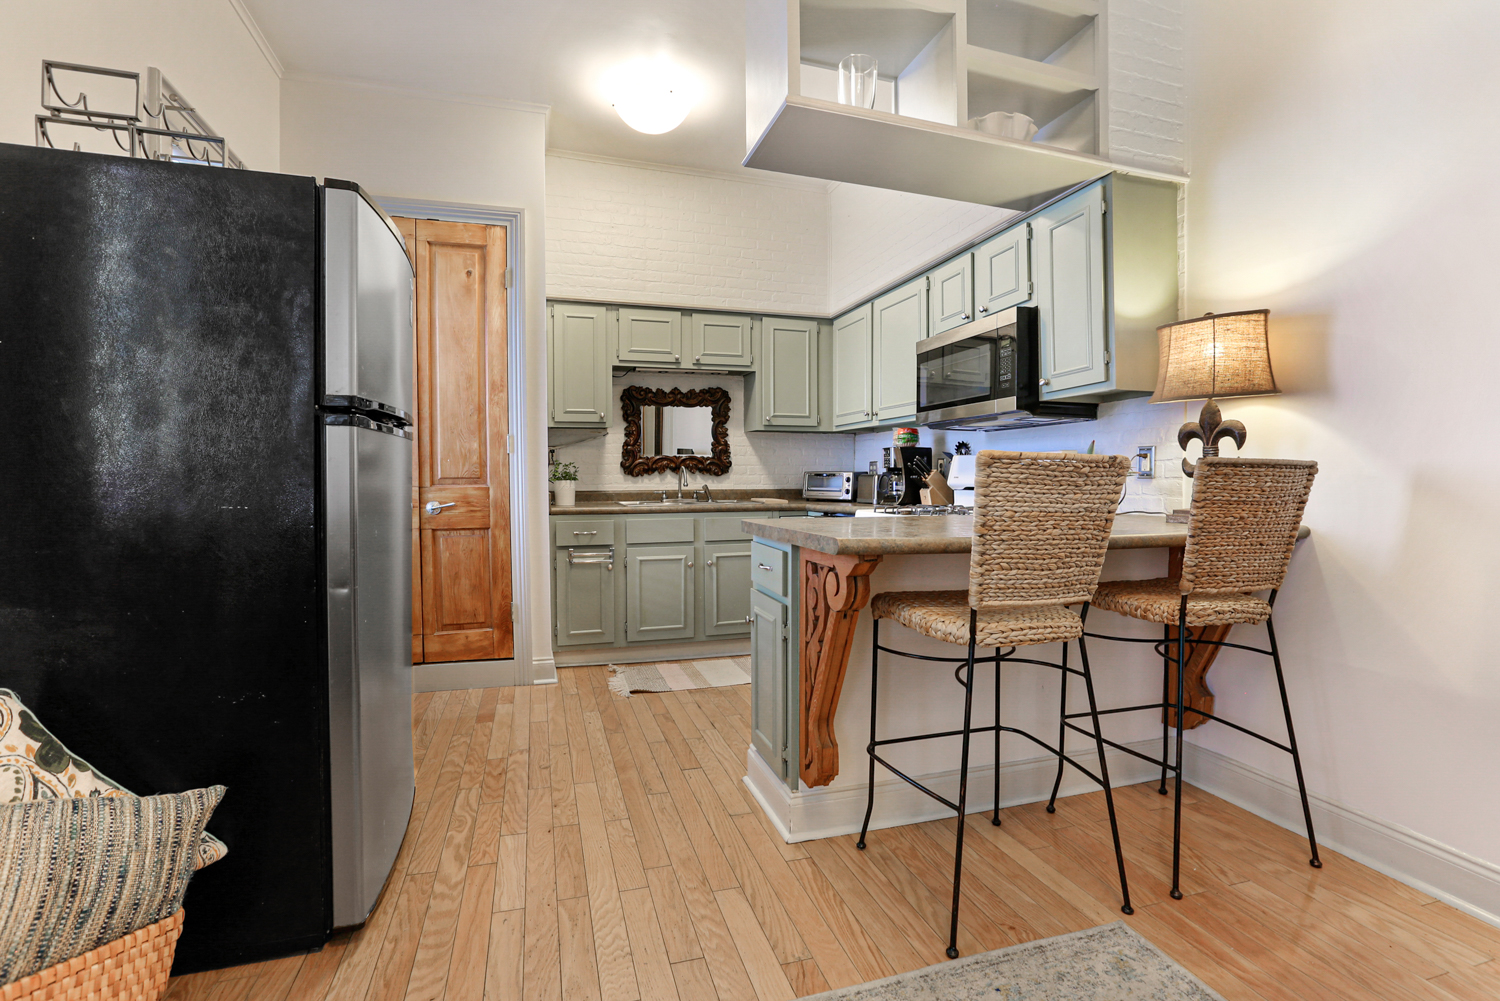 Garden District, Apartment, 1 beds, 1.0 baths, $2100 per month New Orleans Rental - devie image_7